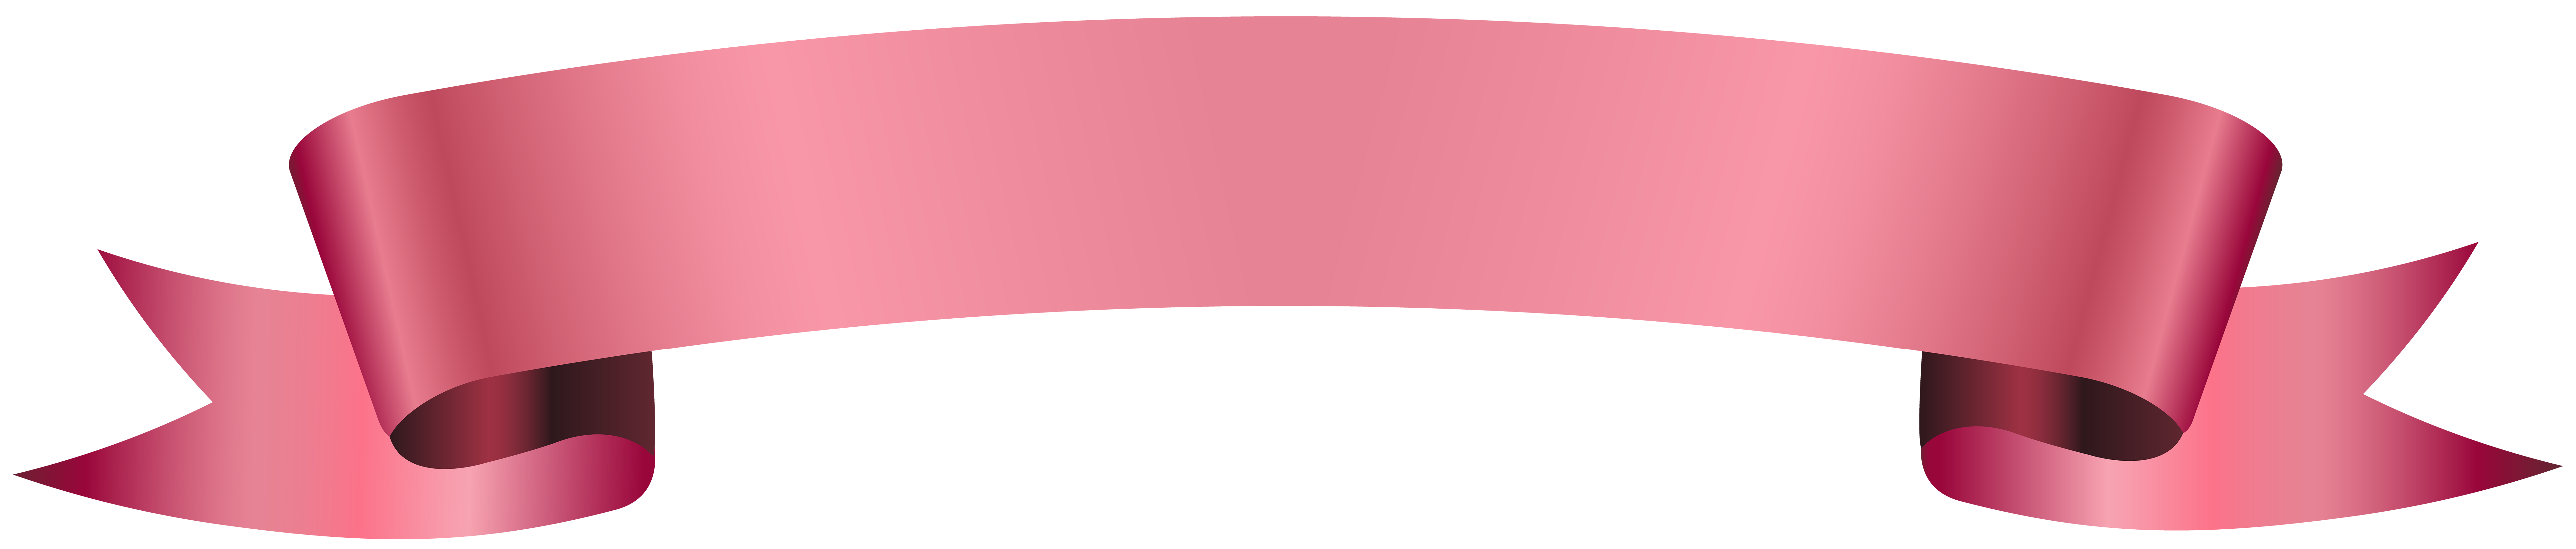 Pink ribbon banner png. Collection of clipart